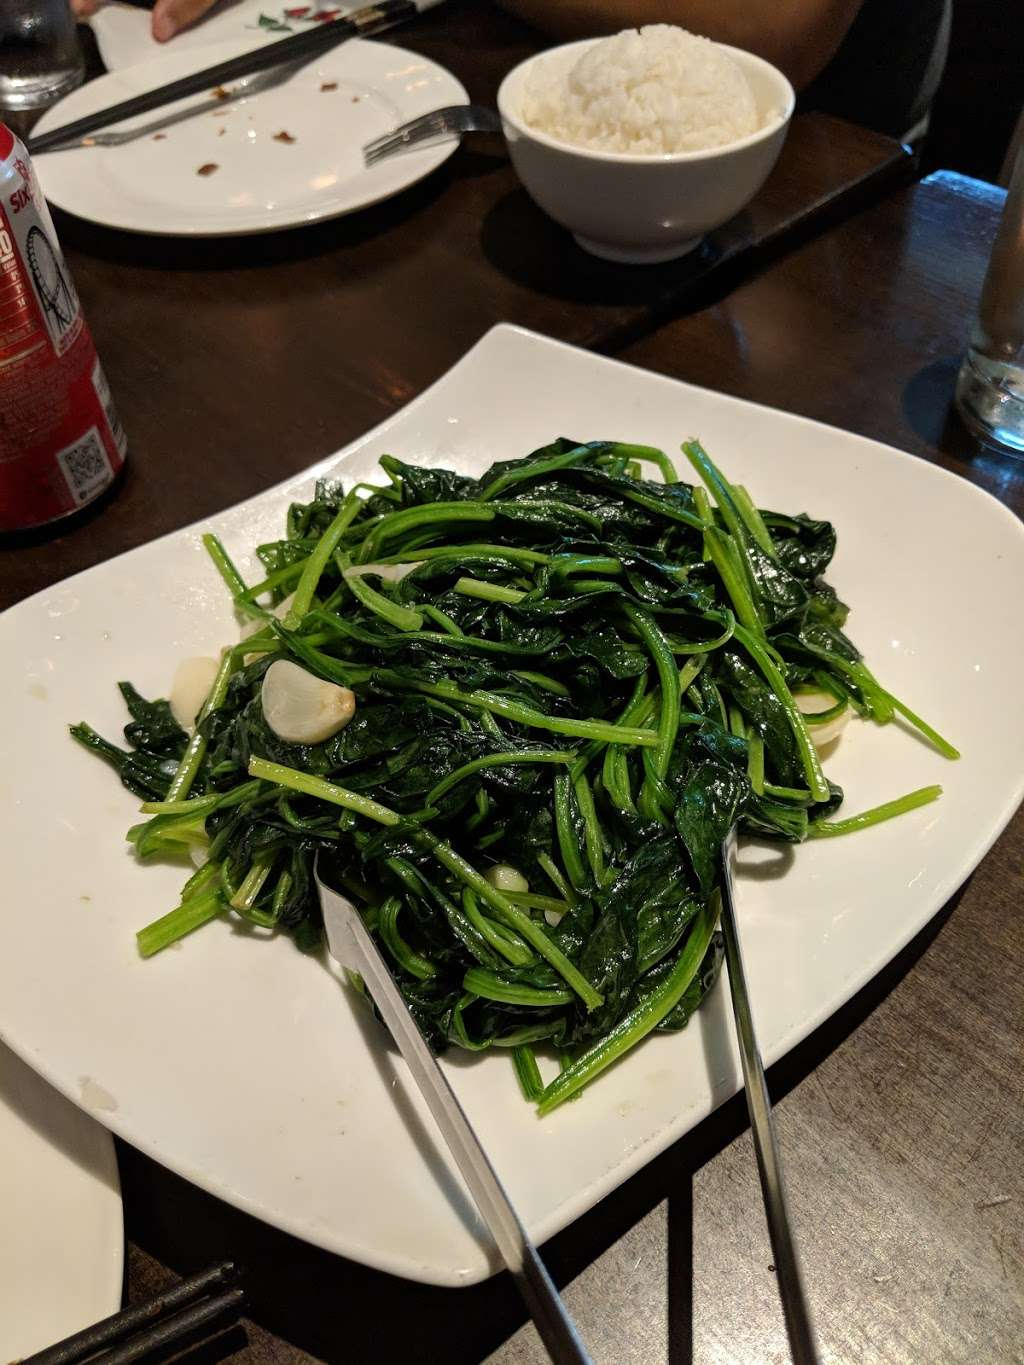 China Jade Szechuan Chili House - meal delivery    Photo 4 of 10   Address: 1643 2nd Ave, New York, NY 10028, USA   Phone: (212) 717-6688